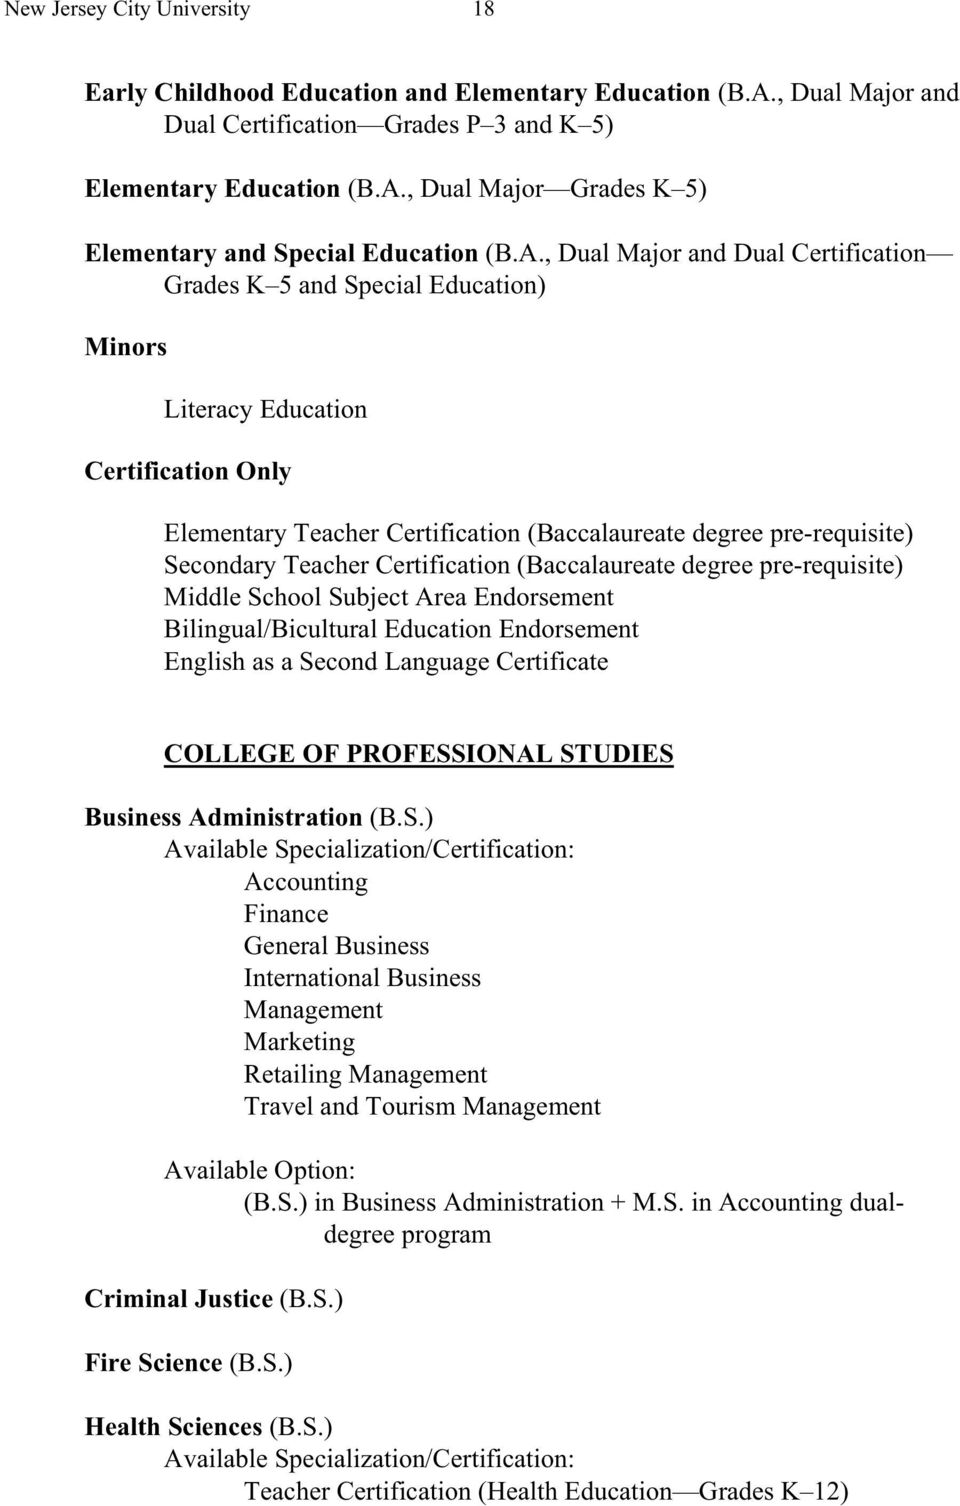 Teacher Certification (Baccalaureate degree pre-requisite) Middle School Subject Area Endorsement Bilingual/Bicultural Education Endorsement English as a Second Language Certificate COLLEGE OF